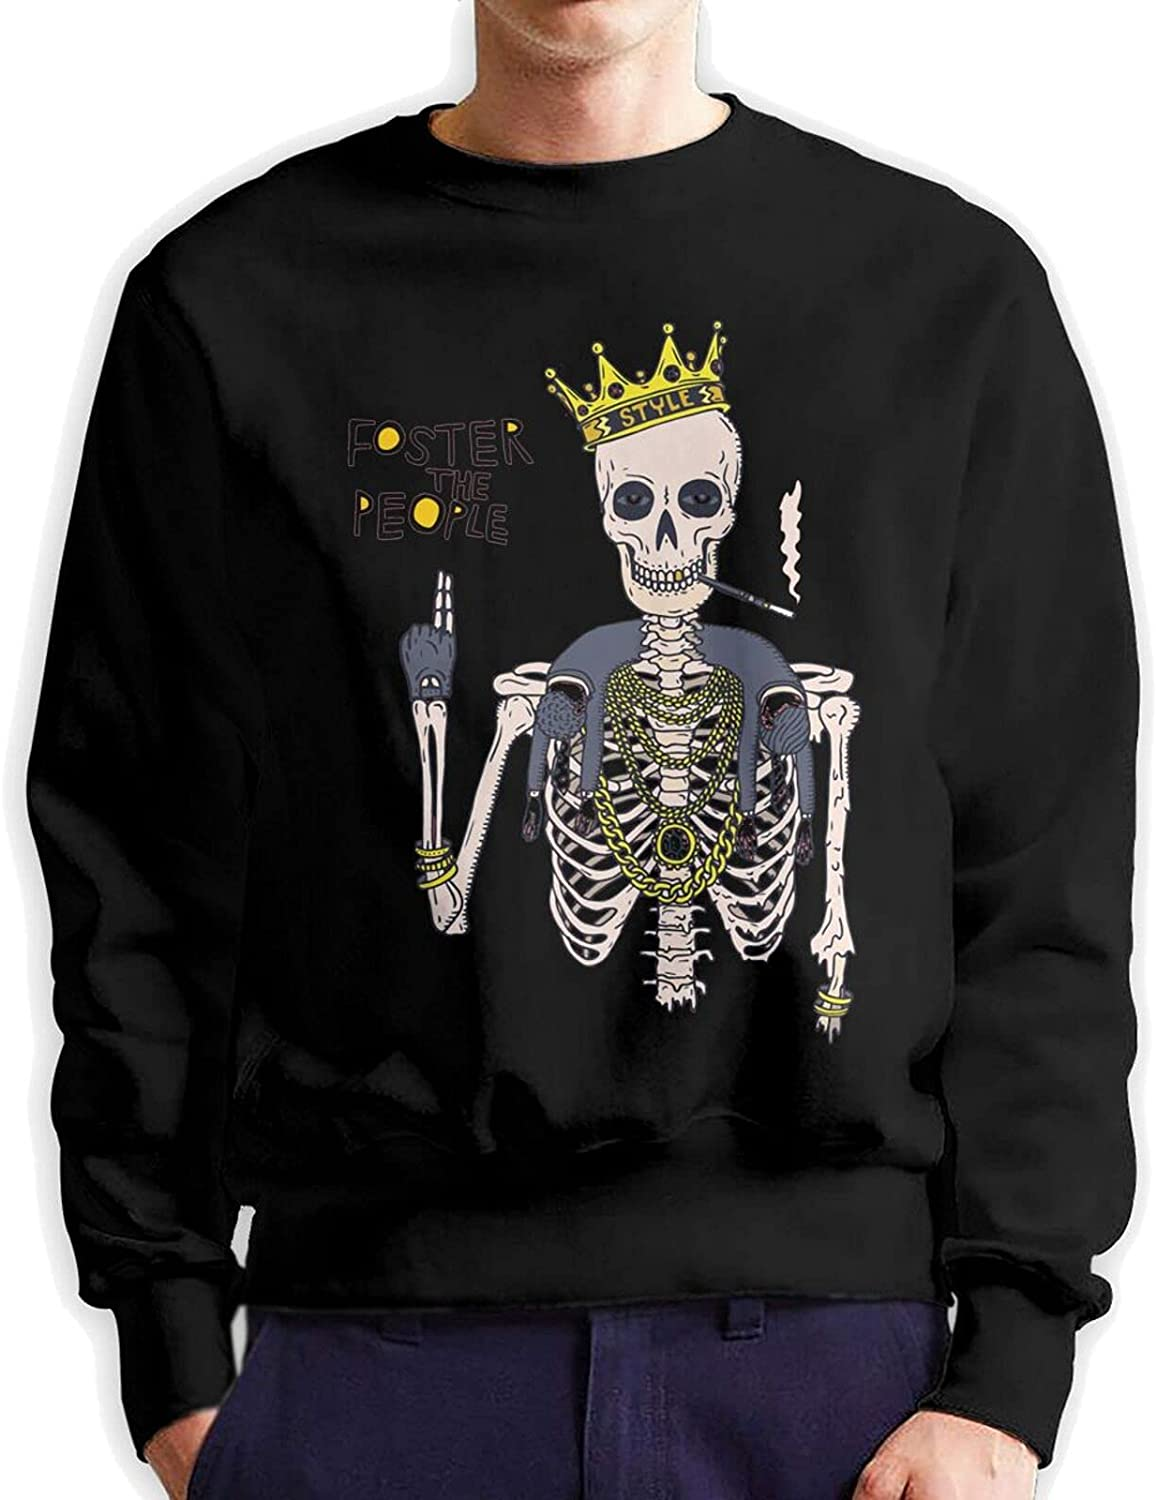 Foster The People Men'S Long Sleeve Printed Pullover Cotton Black